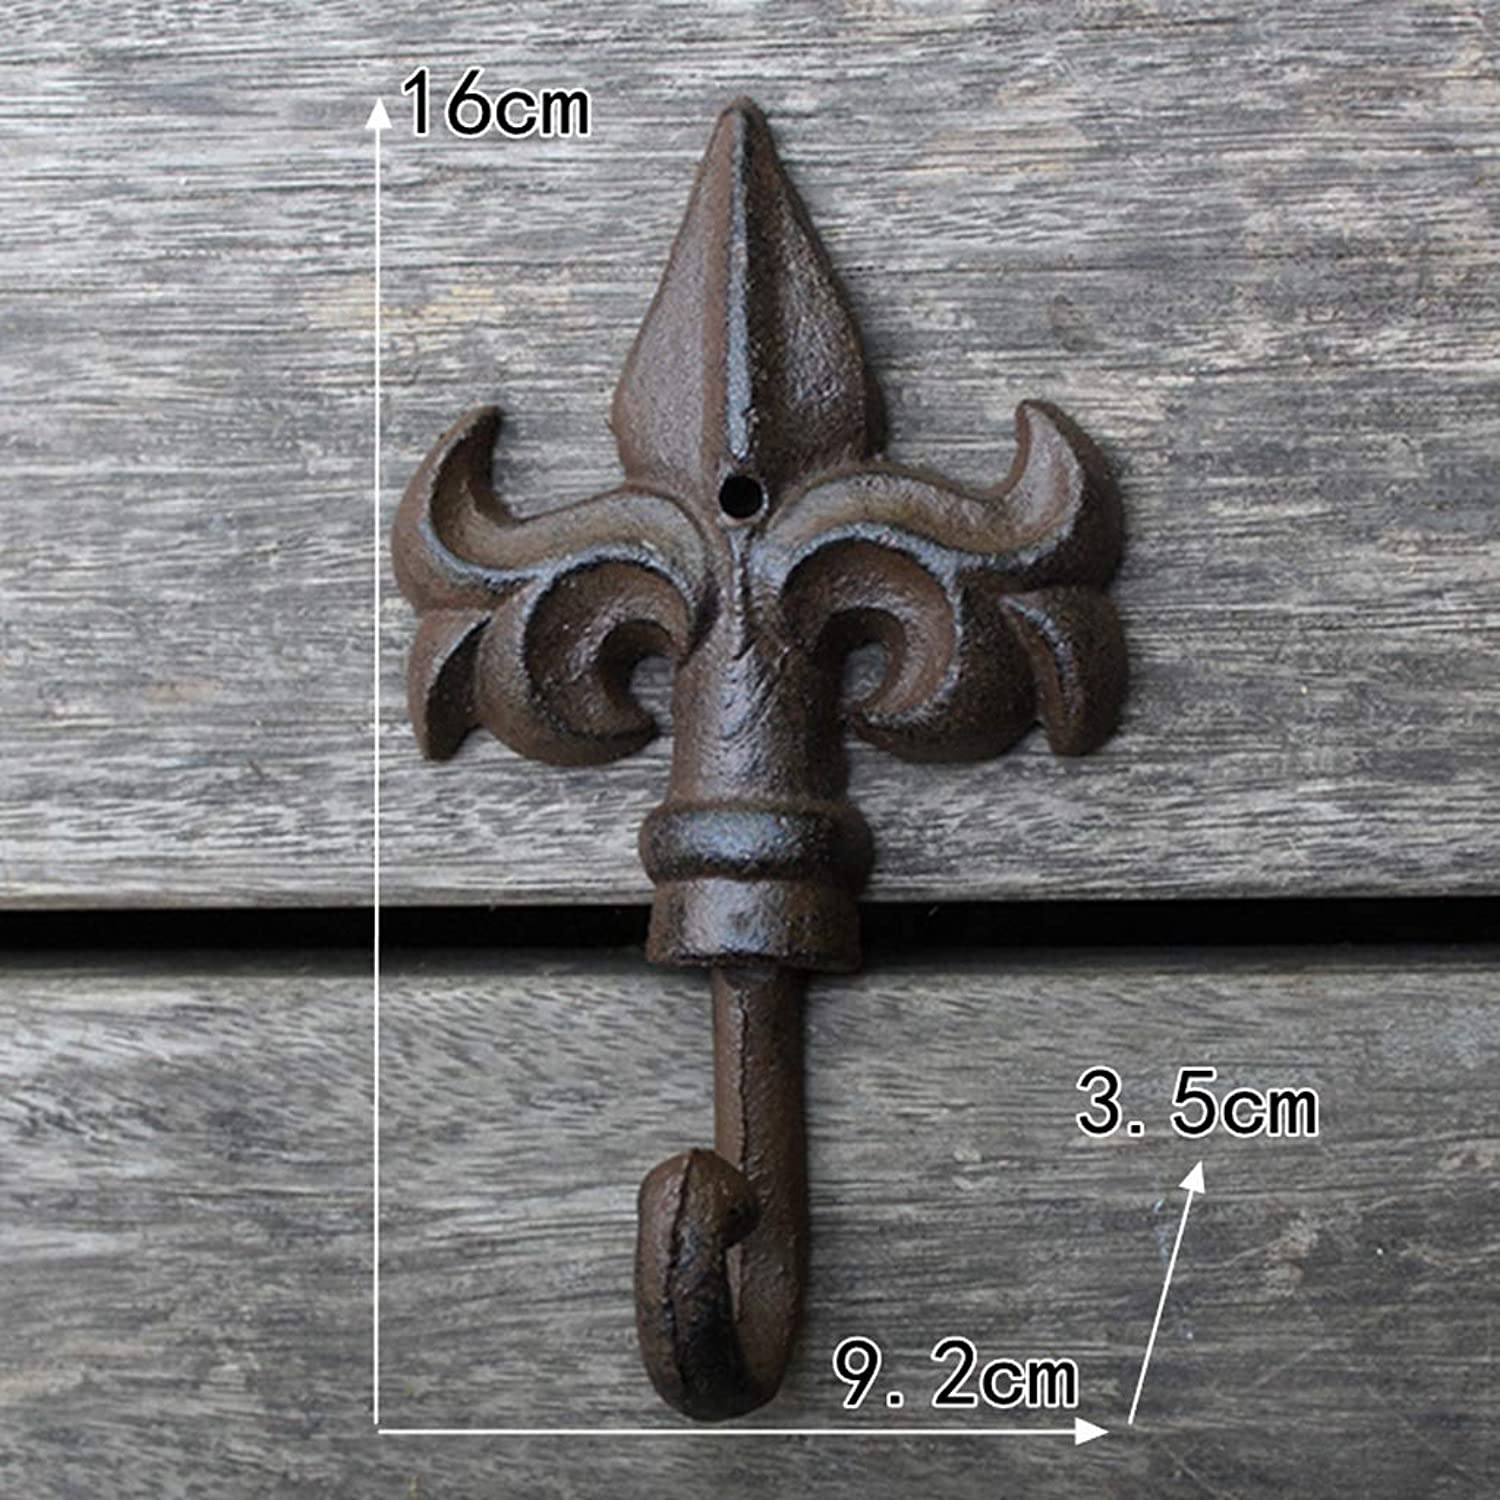 XUYRENP Double Flower Tip Shape Retro Cast Iron Wrought Iron Coat Clothing Supplies Wall Decoration